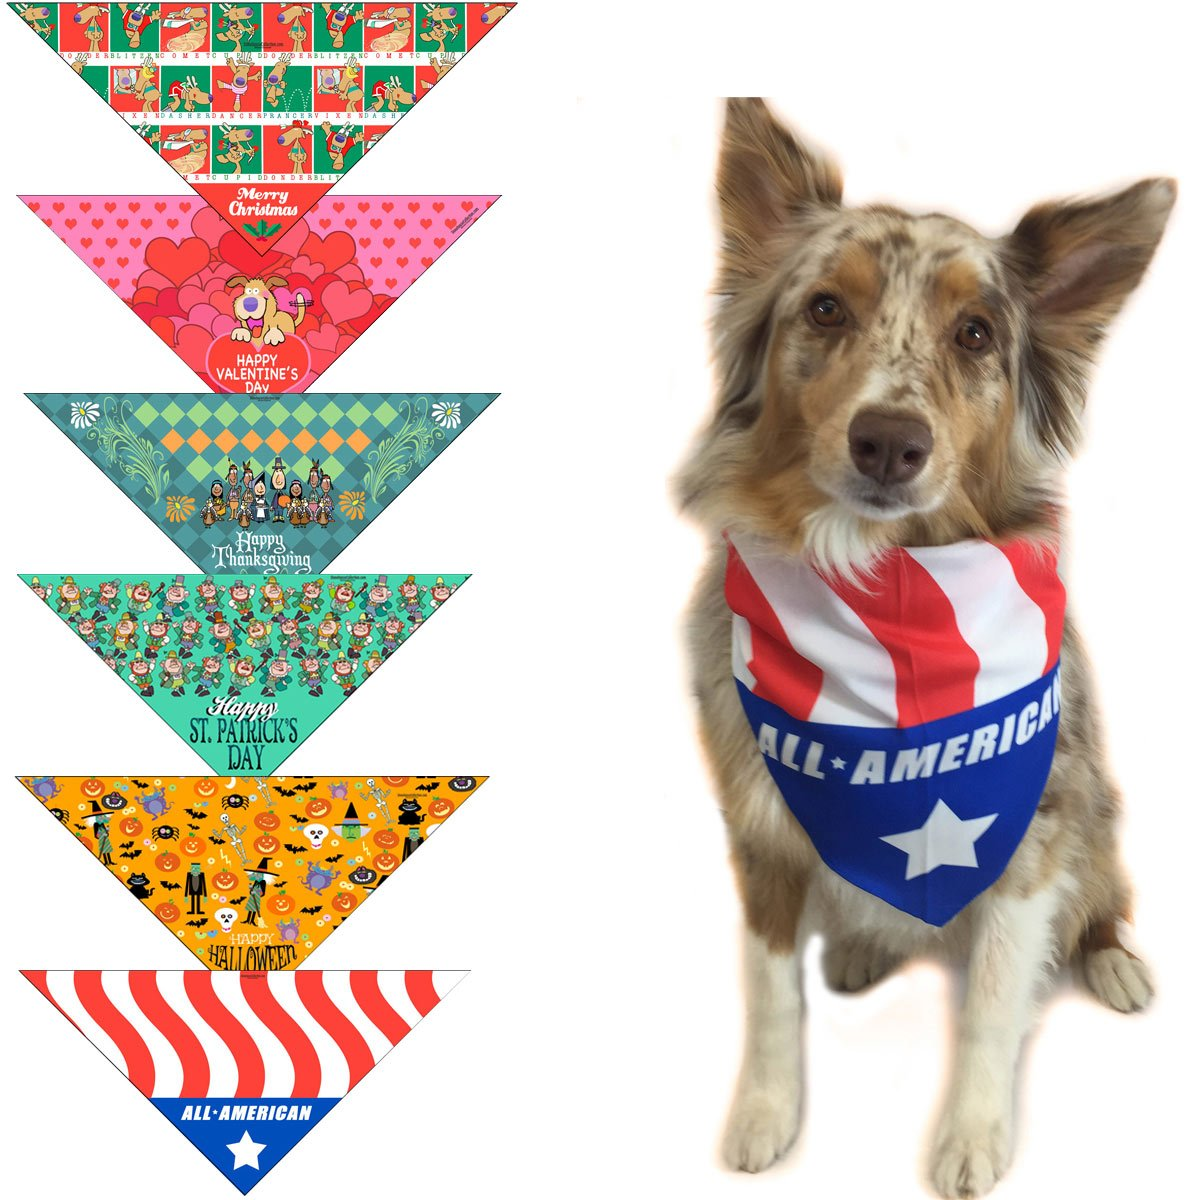 Stonehouse Collection 6 pc Holiday Dog Bandana for Small Dogs - Set of 6 - Christmas, Halloween, Thanksgiving, Valentine's Day, St. Patricks Day, Patriotic